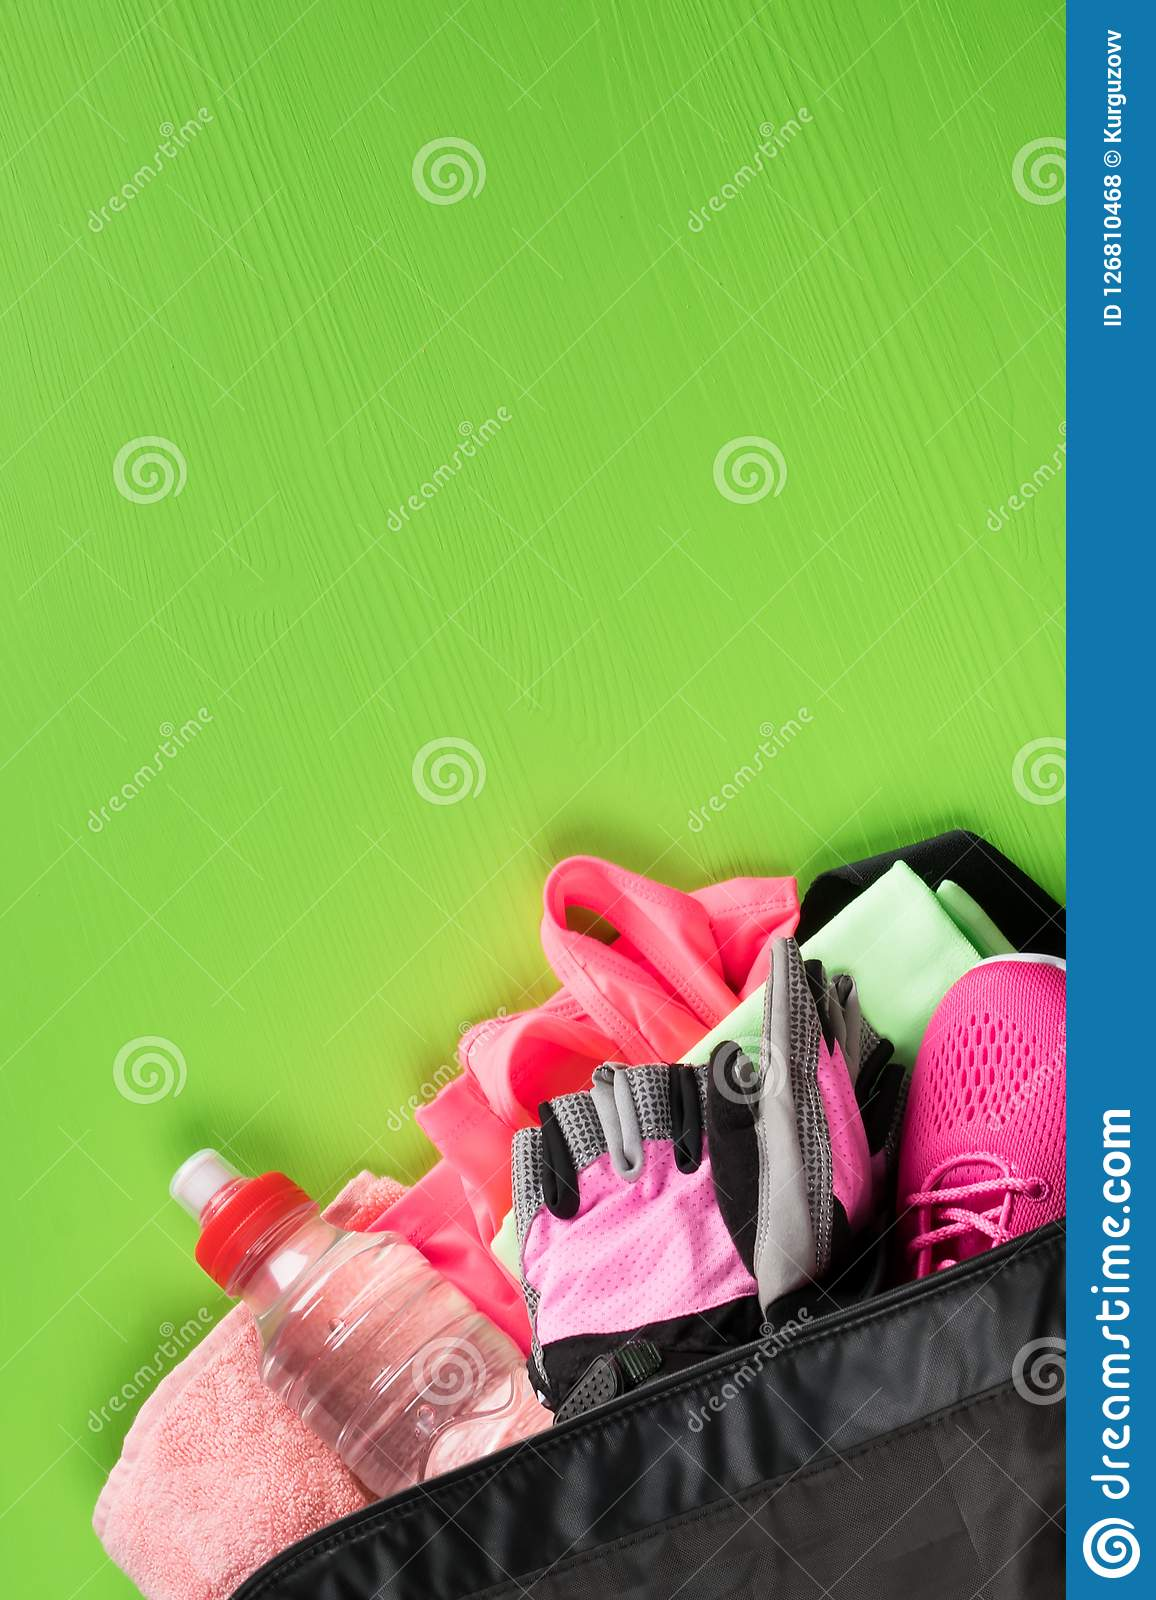 On a green background, a set of female sporting things of pink color in an open bag with a bottle of water